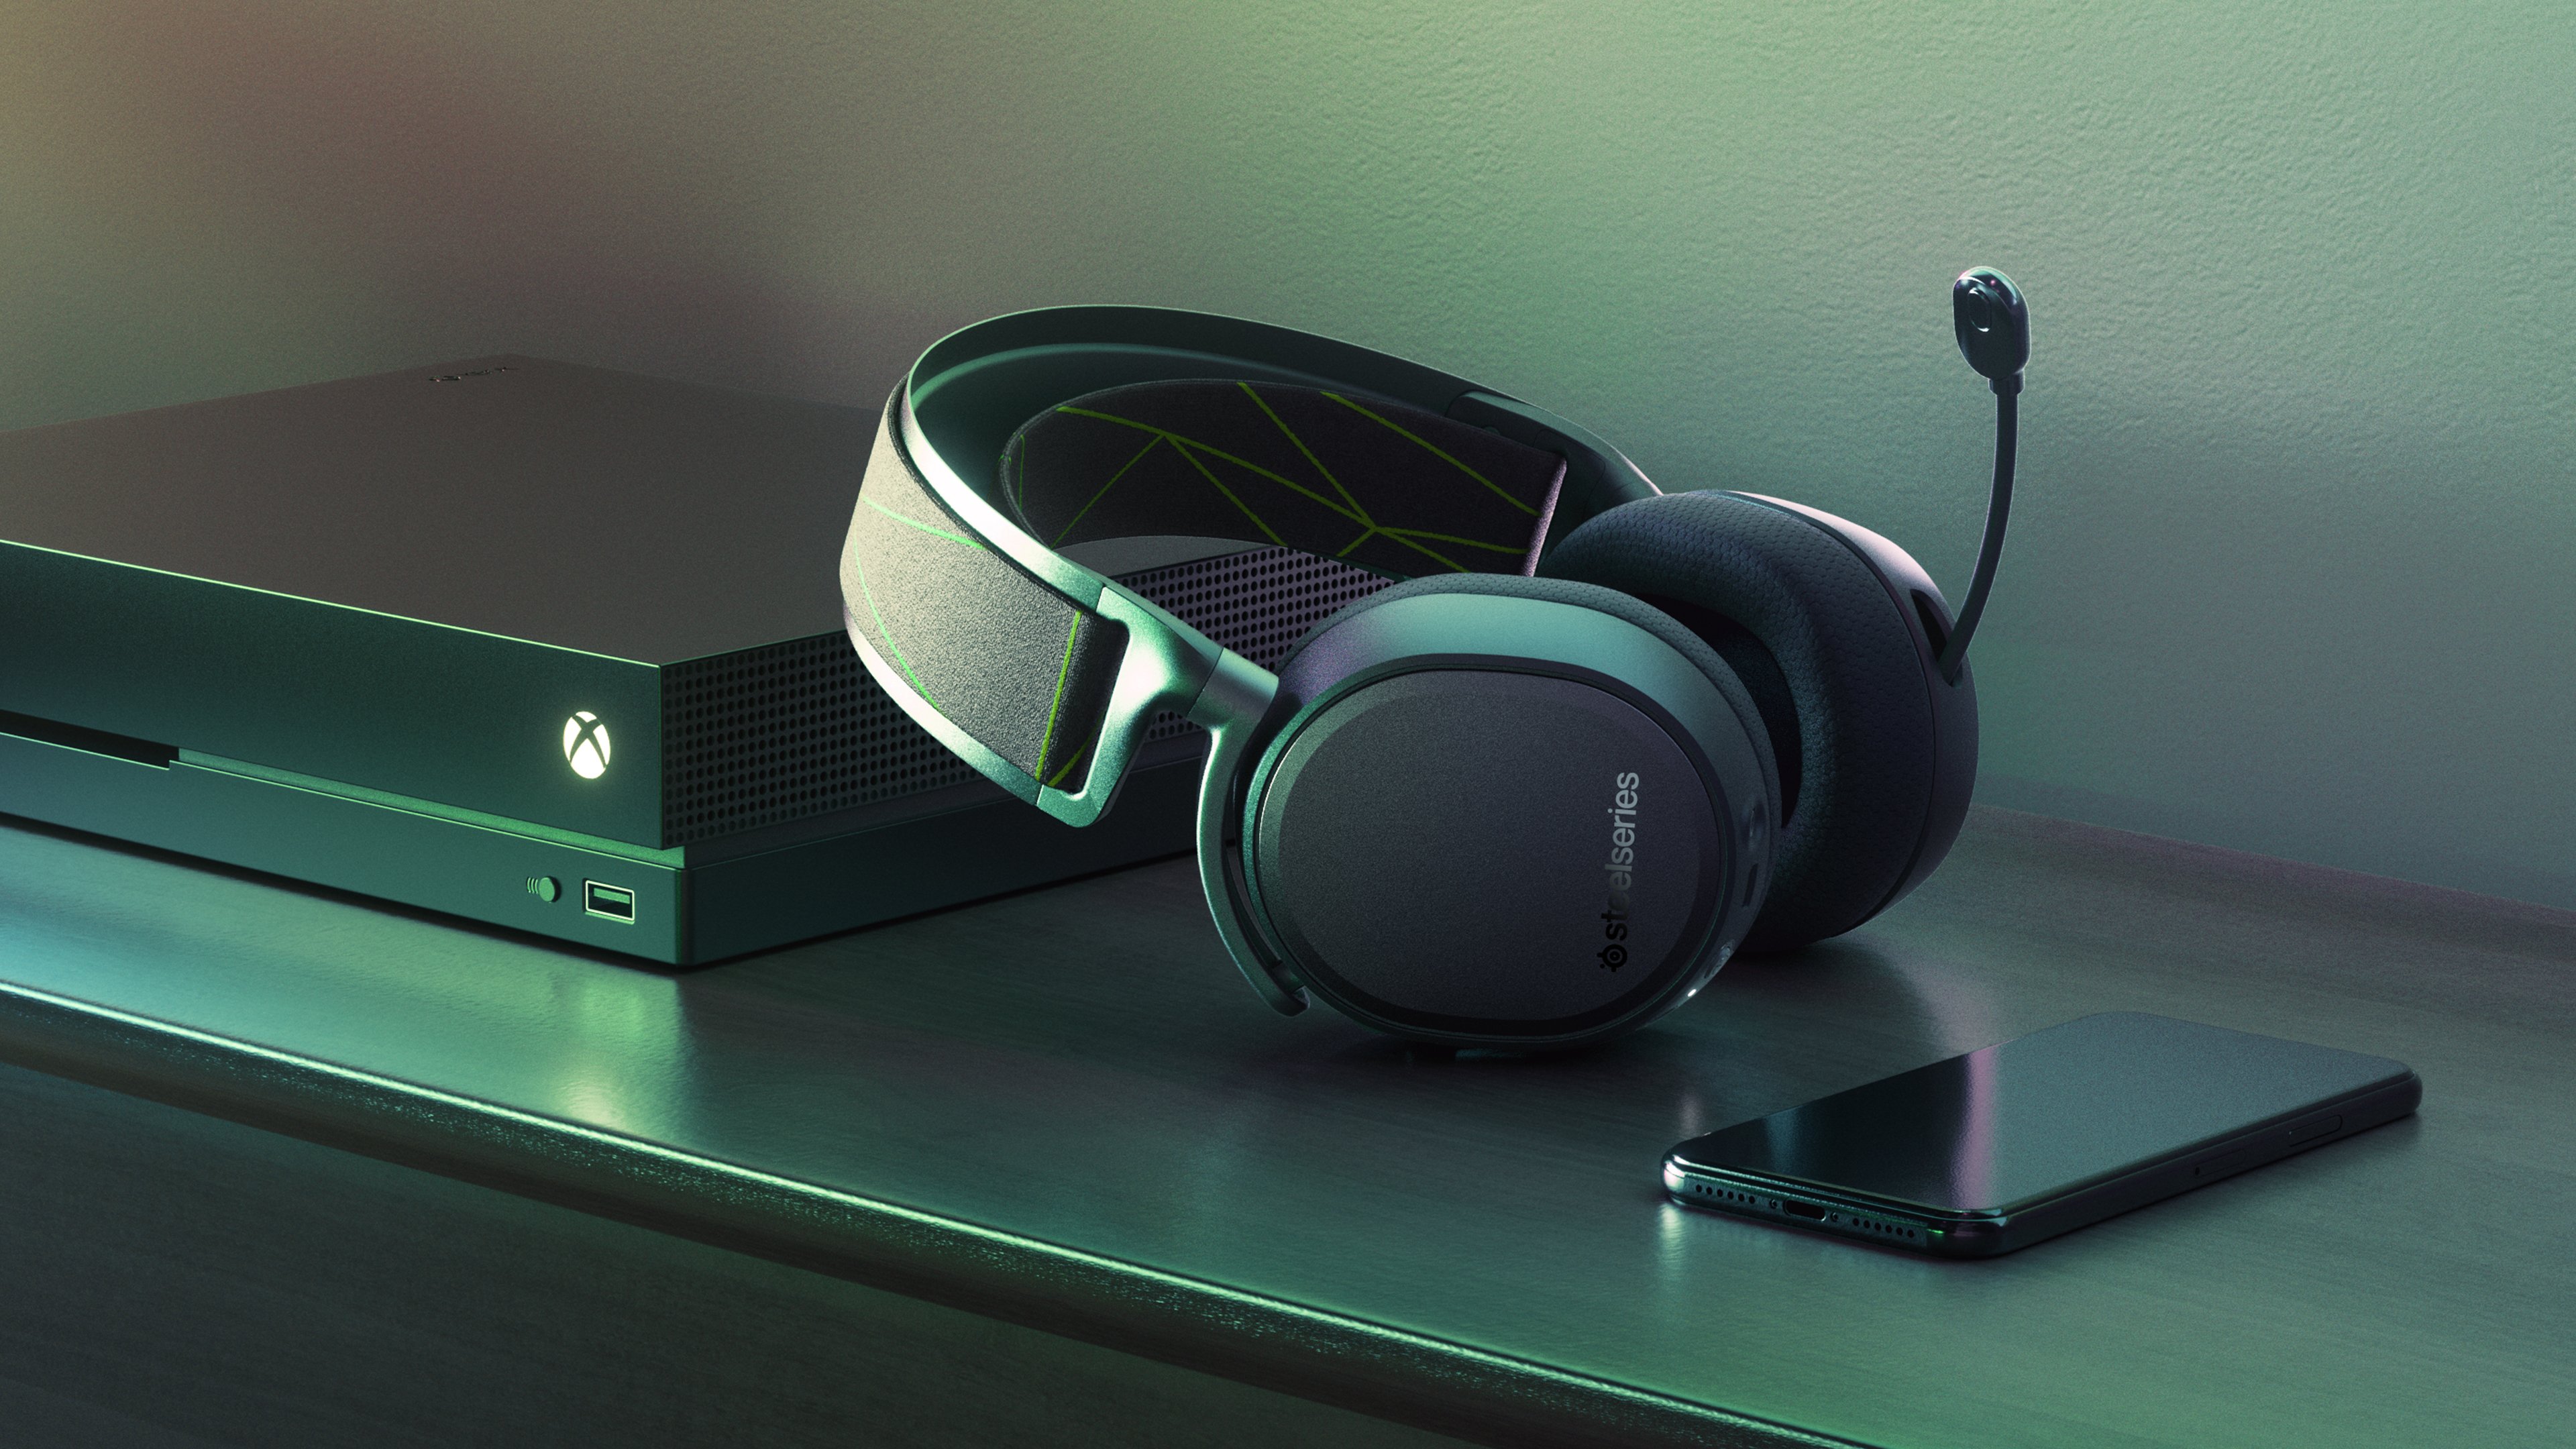 SteelSeries' award-winning Arctis headset comes to Xbox One